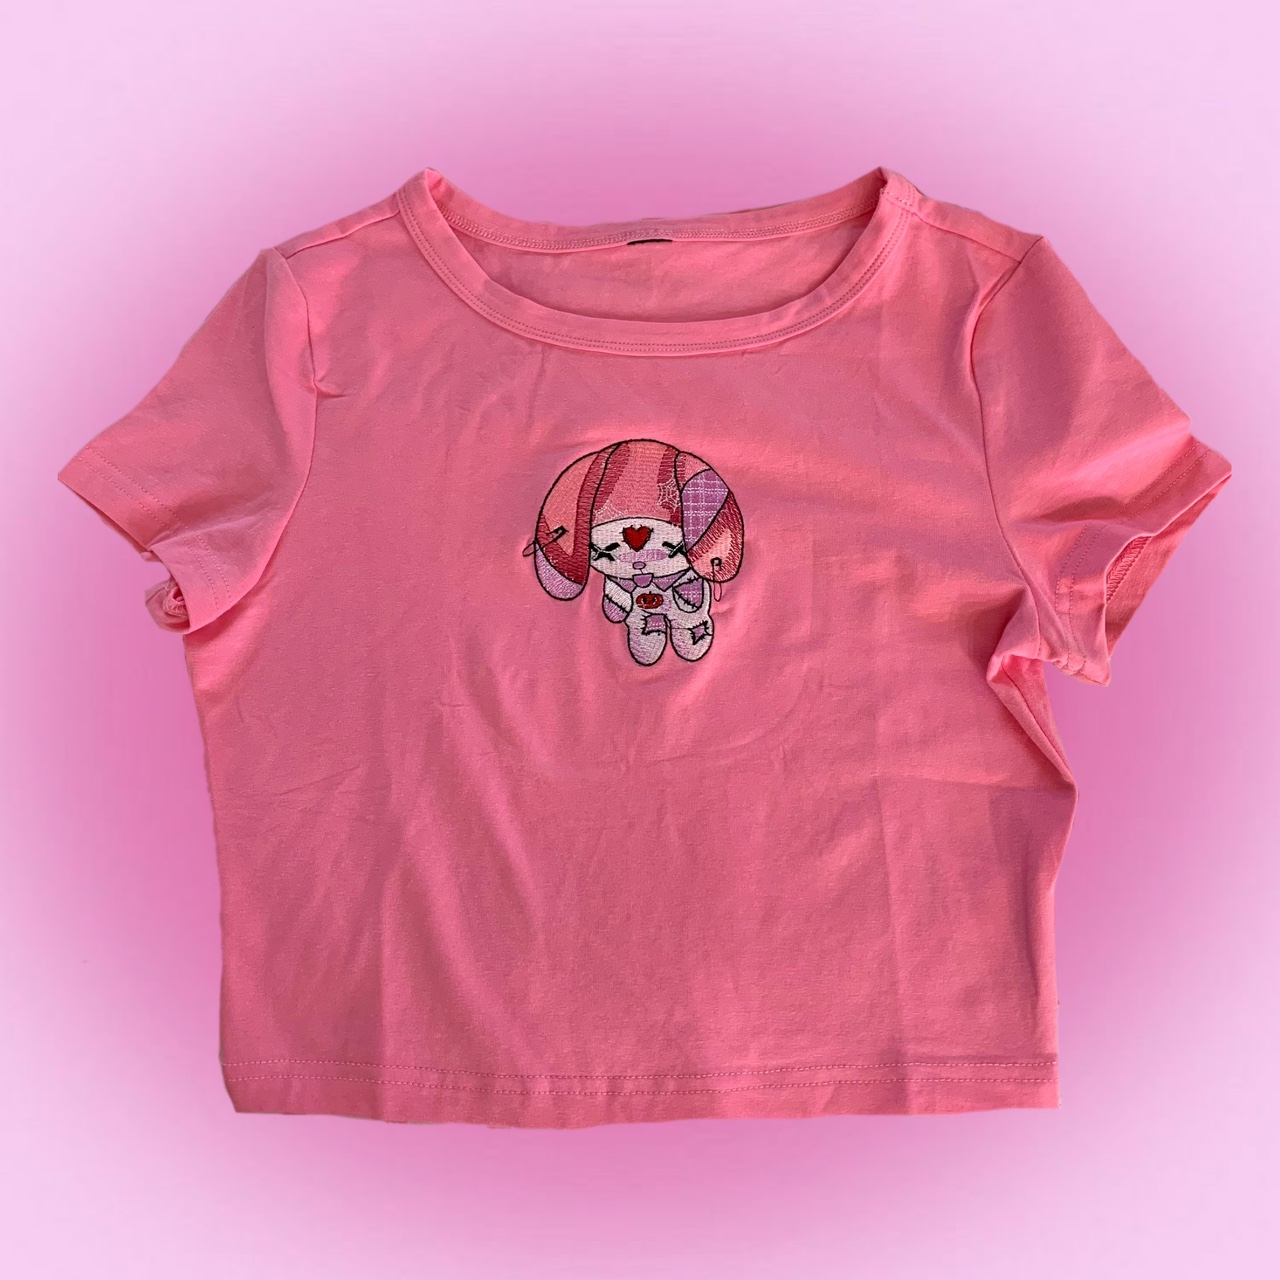 Product Image 1 - 💗cutest pink crop top with